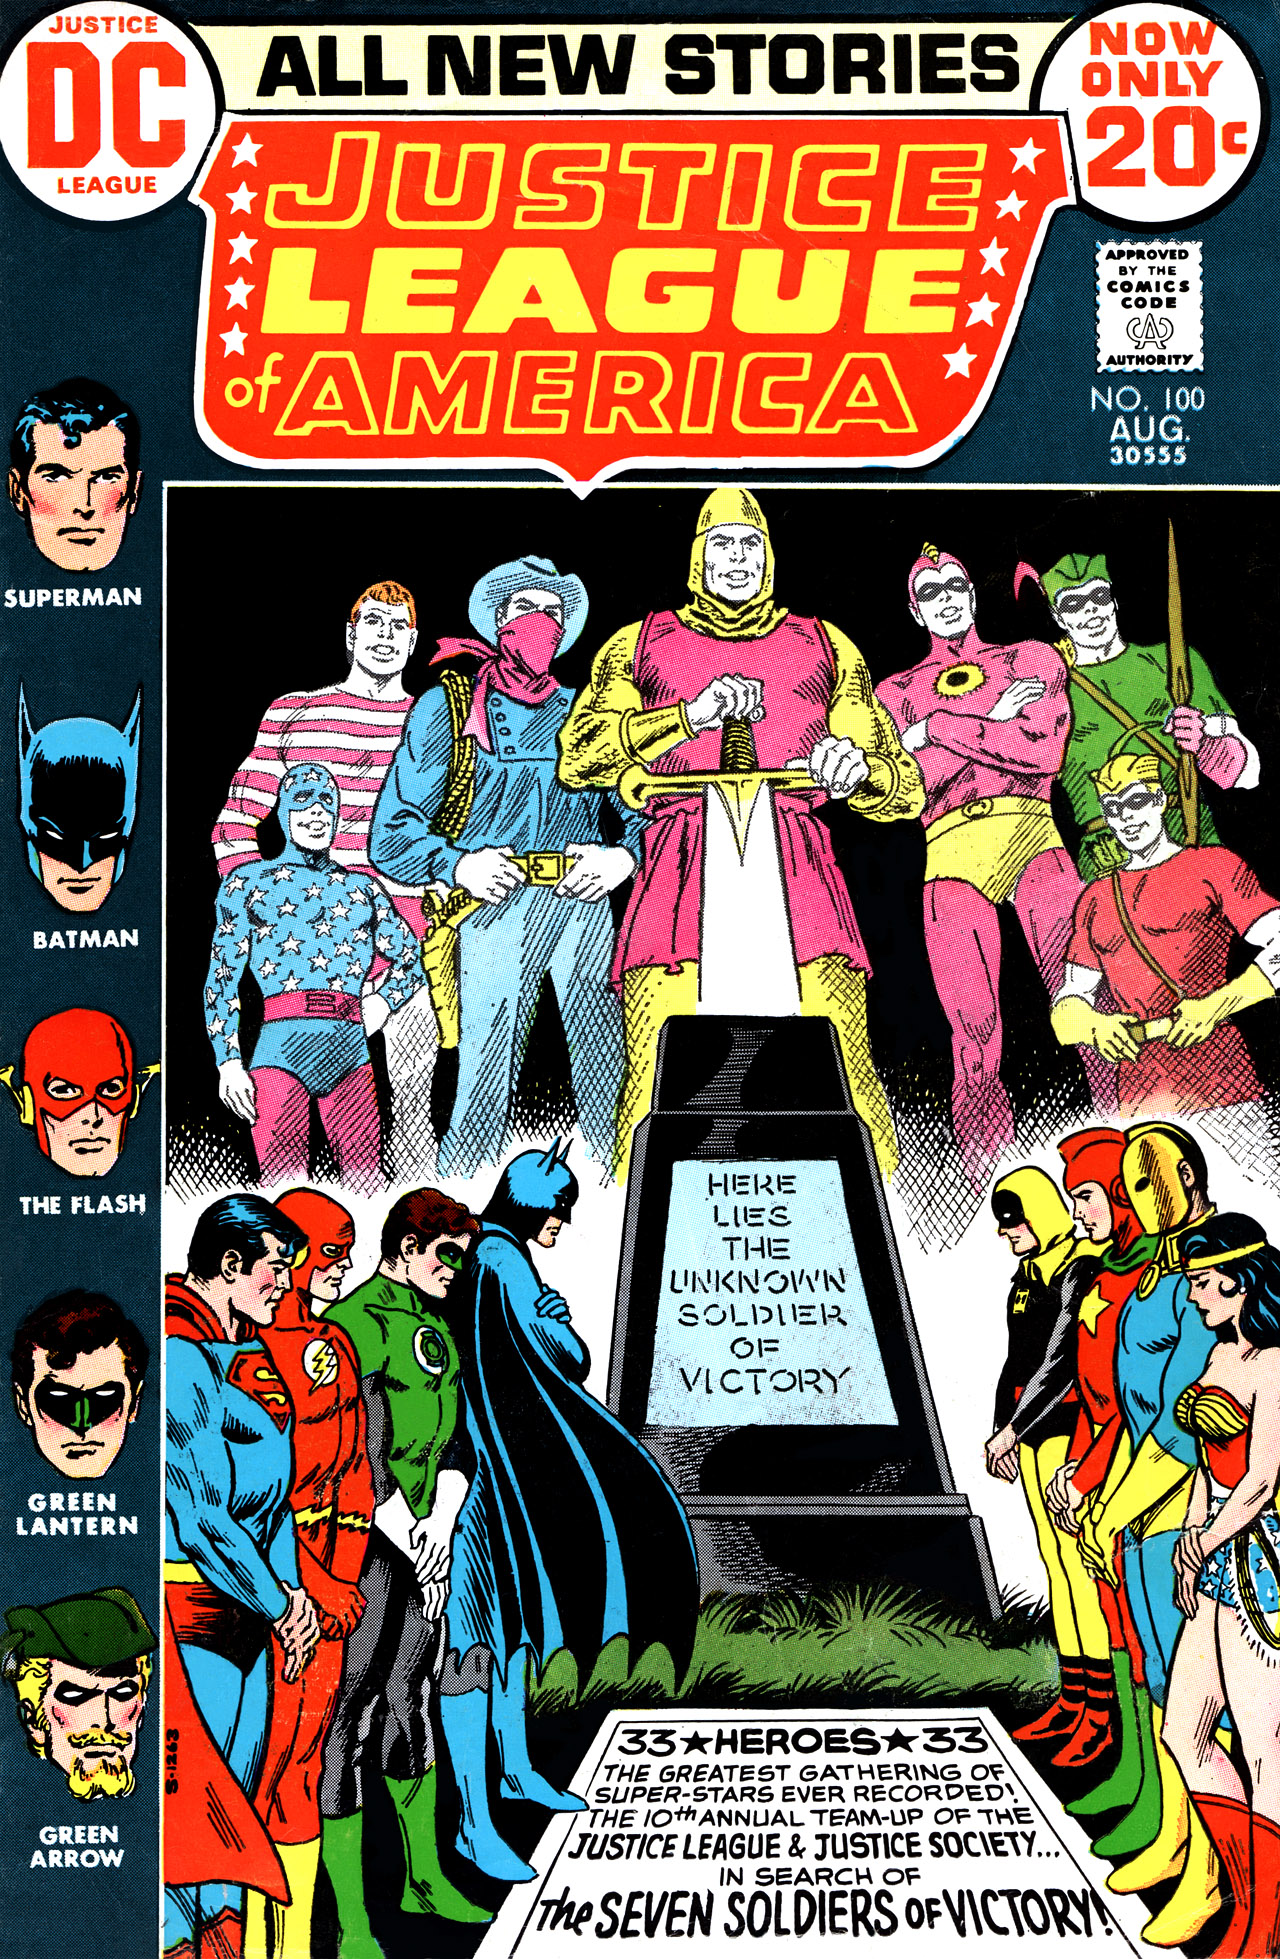 Justice League of America (1960) #100, cover by Nick Cardy.